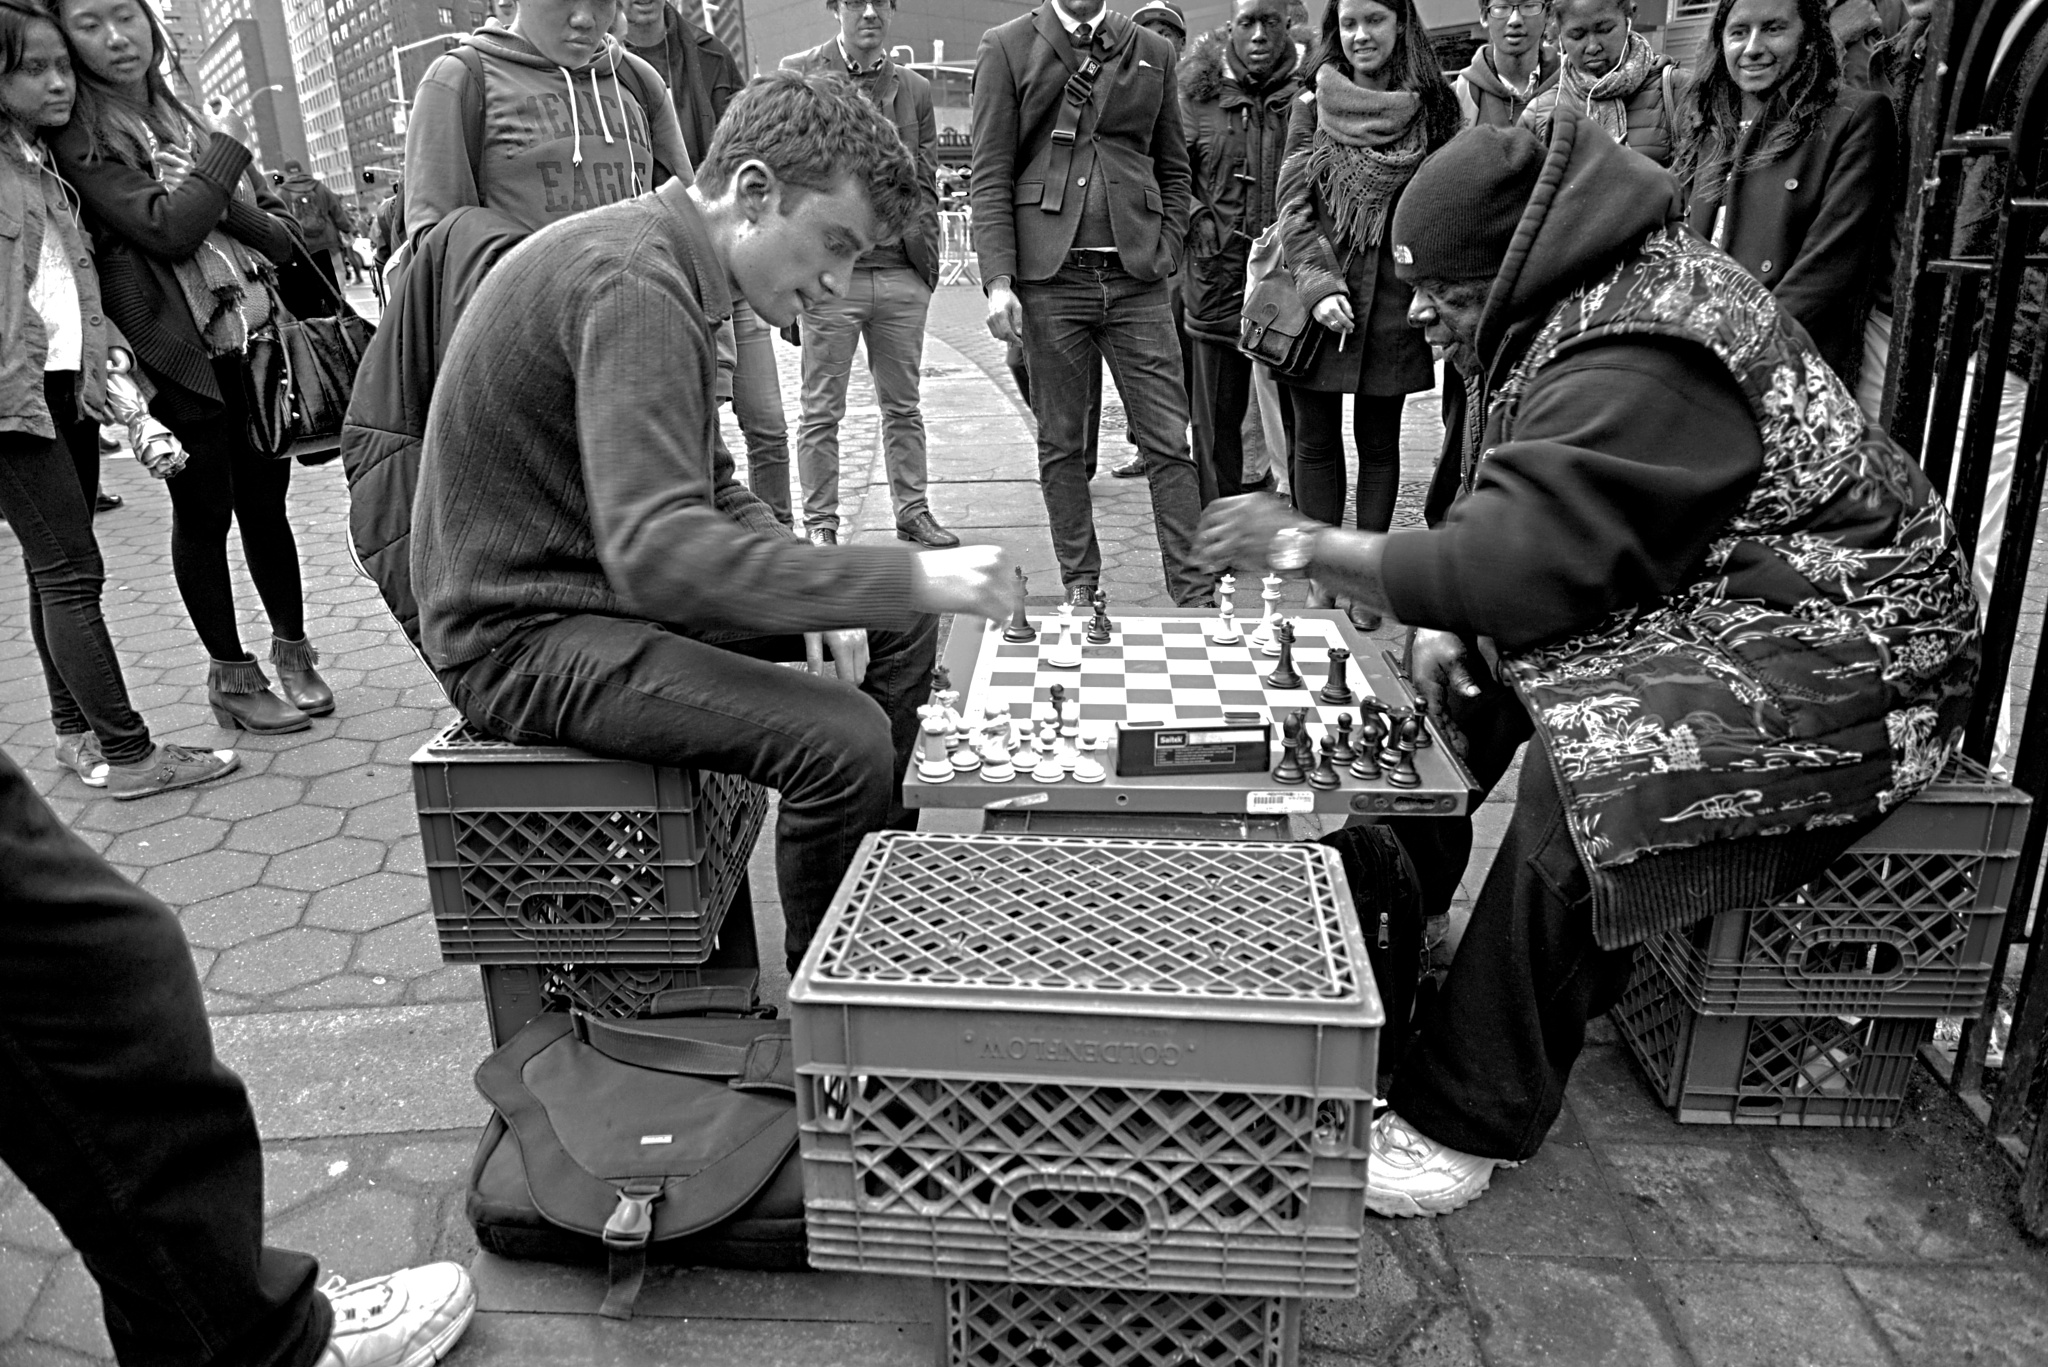 Union Square Chess by JDeGraff